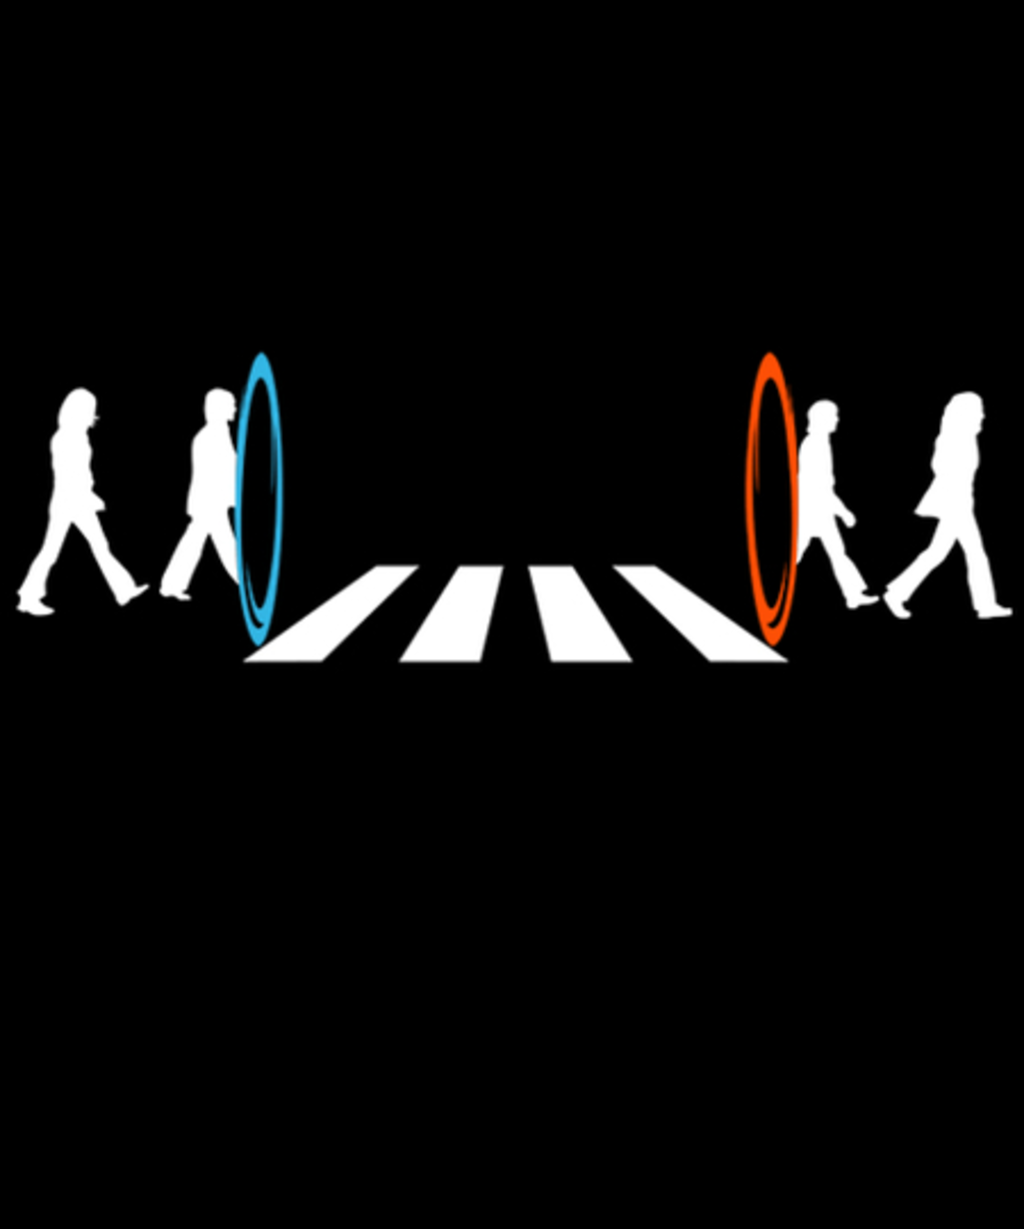 Qwertee: Abbey road